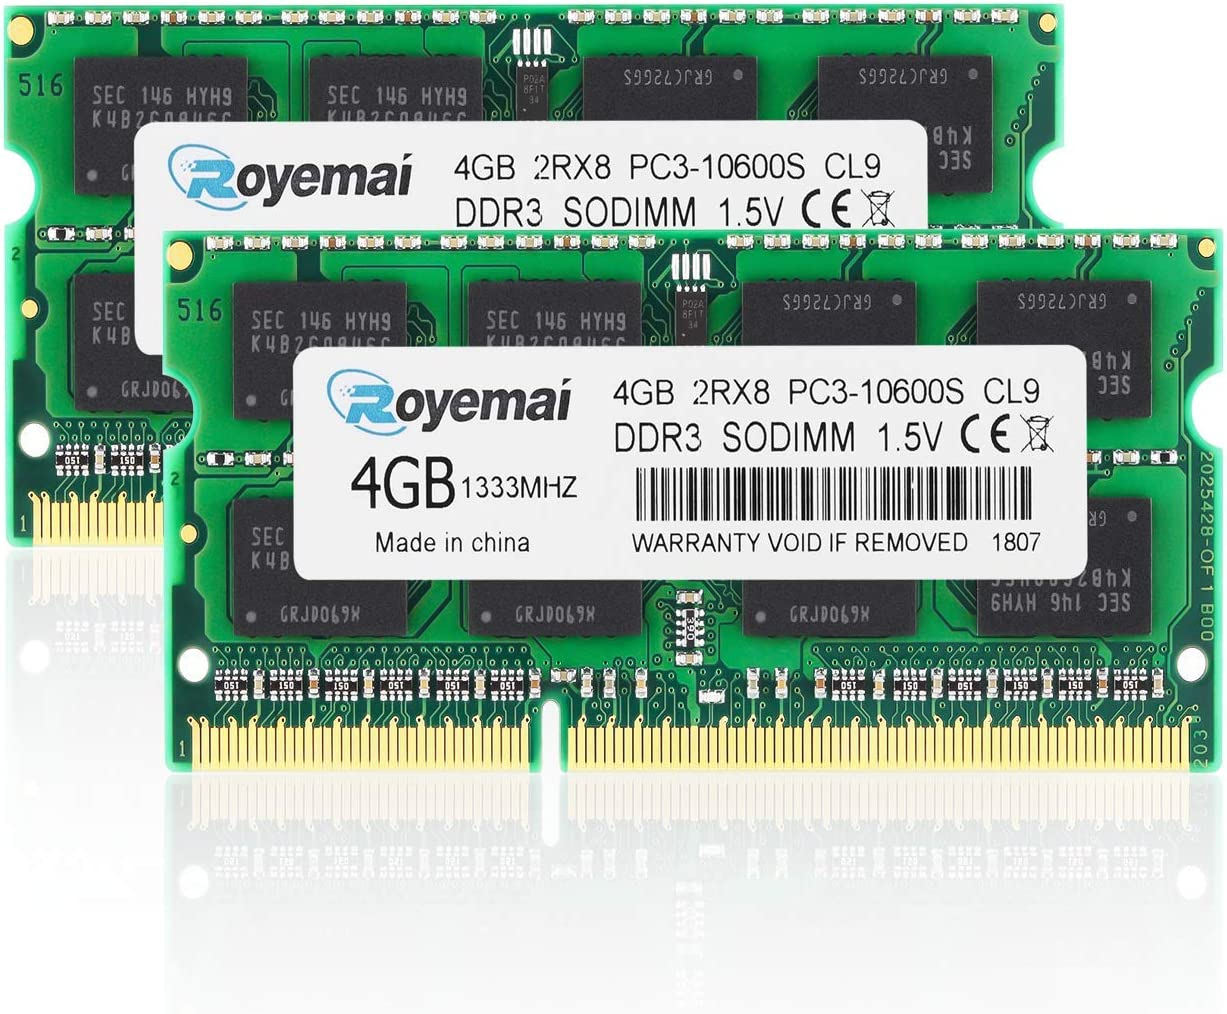 ROYEMAI 8GB Kit (2x4GB) PC3-10600 DDR3 1333 8GB RAM Memory Upgrade for Early/Late 2011 13/15/17 inch MacBook Pro, Mid 2010 and Mid/Late 2011 21.5/27 inch iMac, Mid 2011 Mac Mini